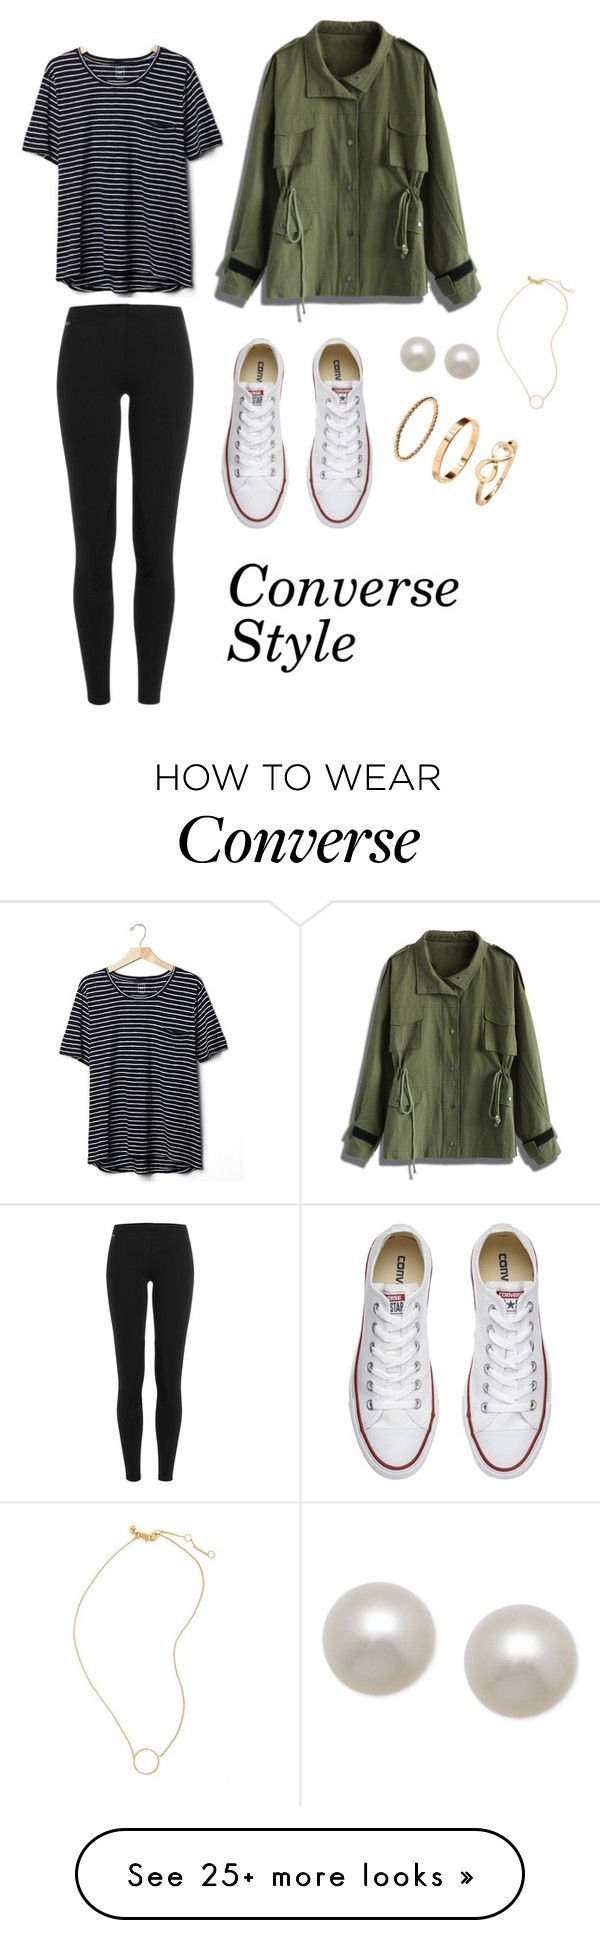 """Converse Style"" by fromraintoshine on Polyvore featuring Chicwish, Converse, Polo Ralph Lauren, Gap, Honora, H&M and Madewell"